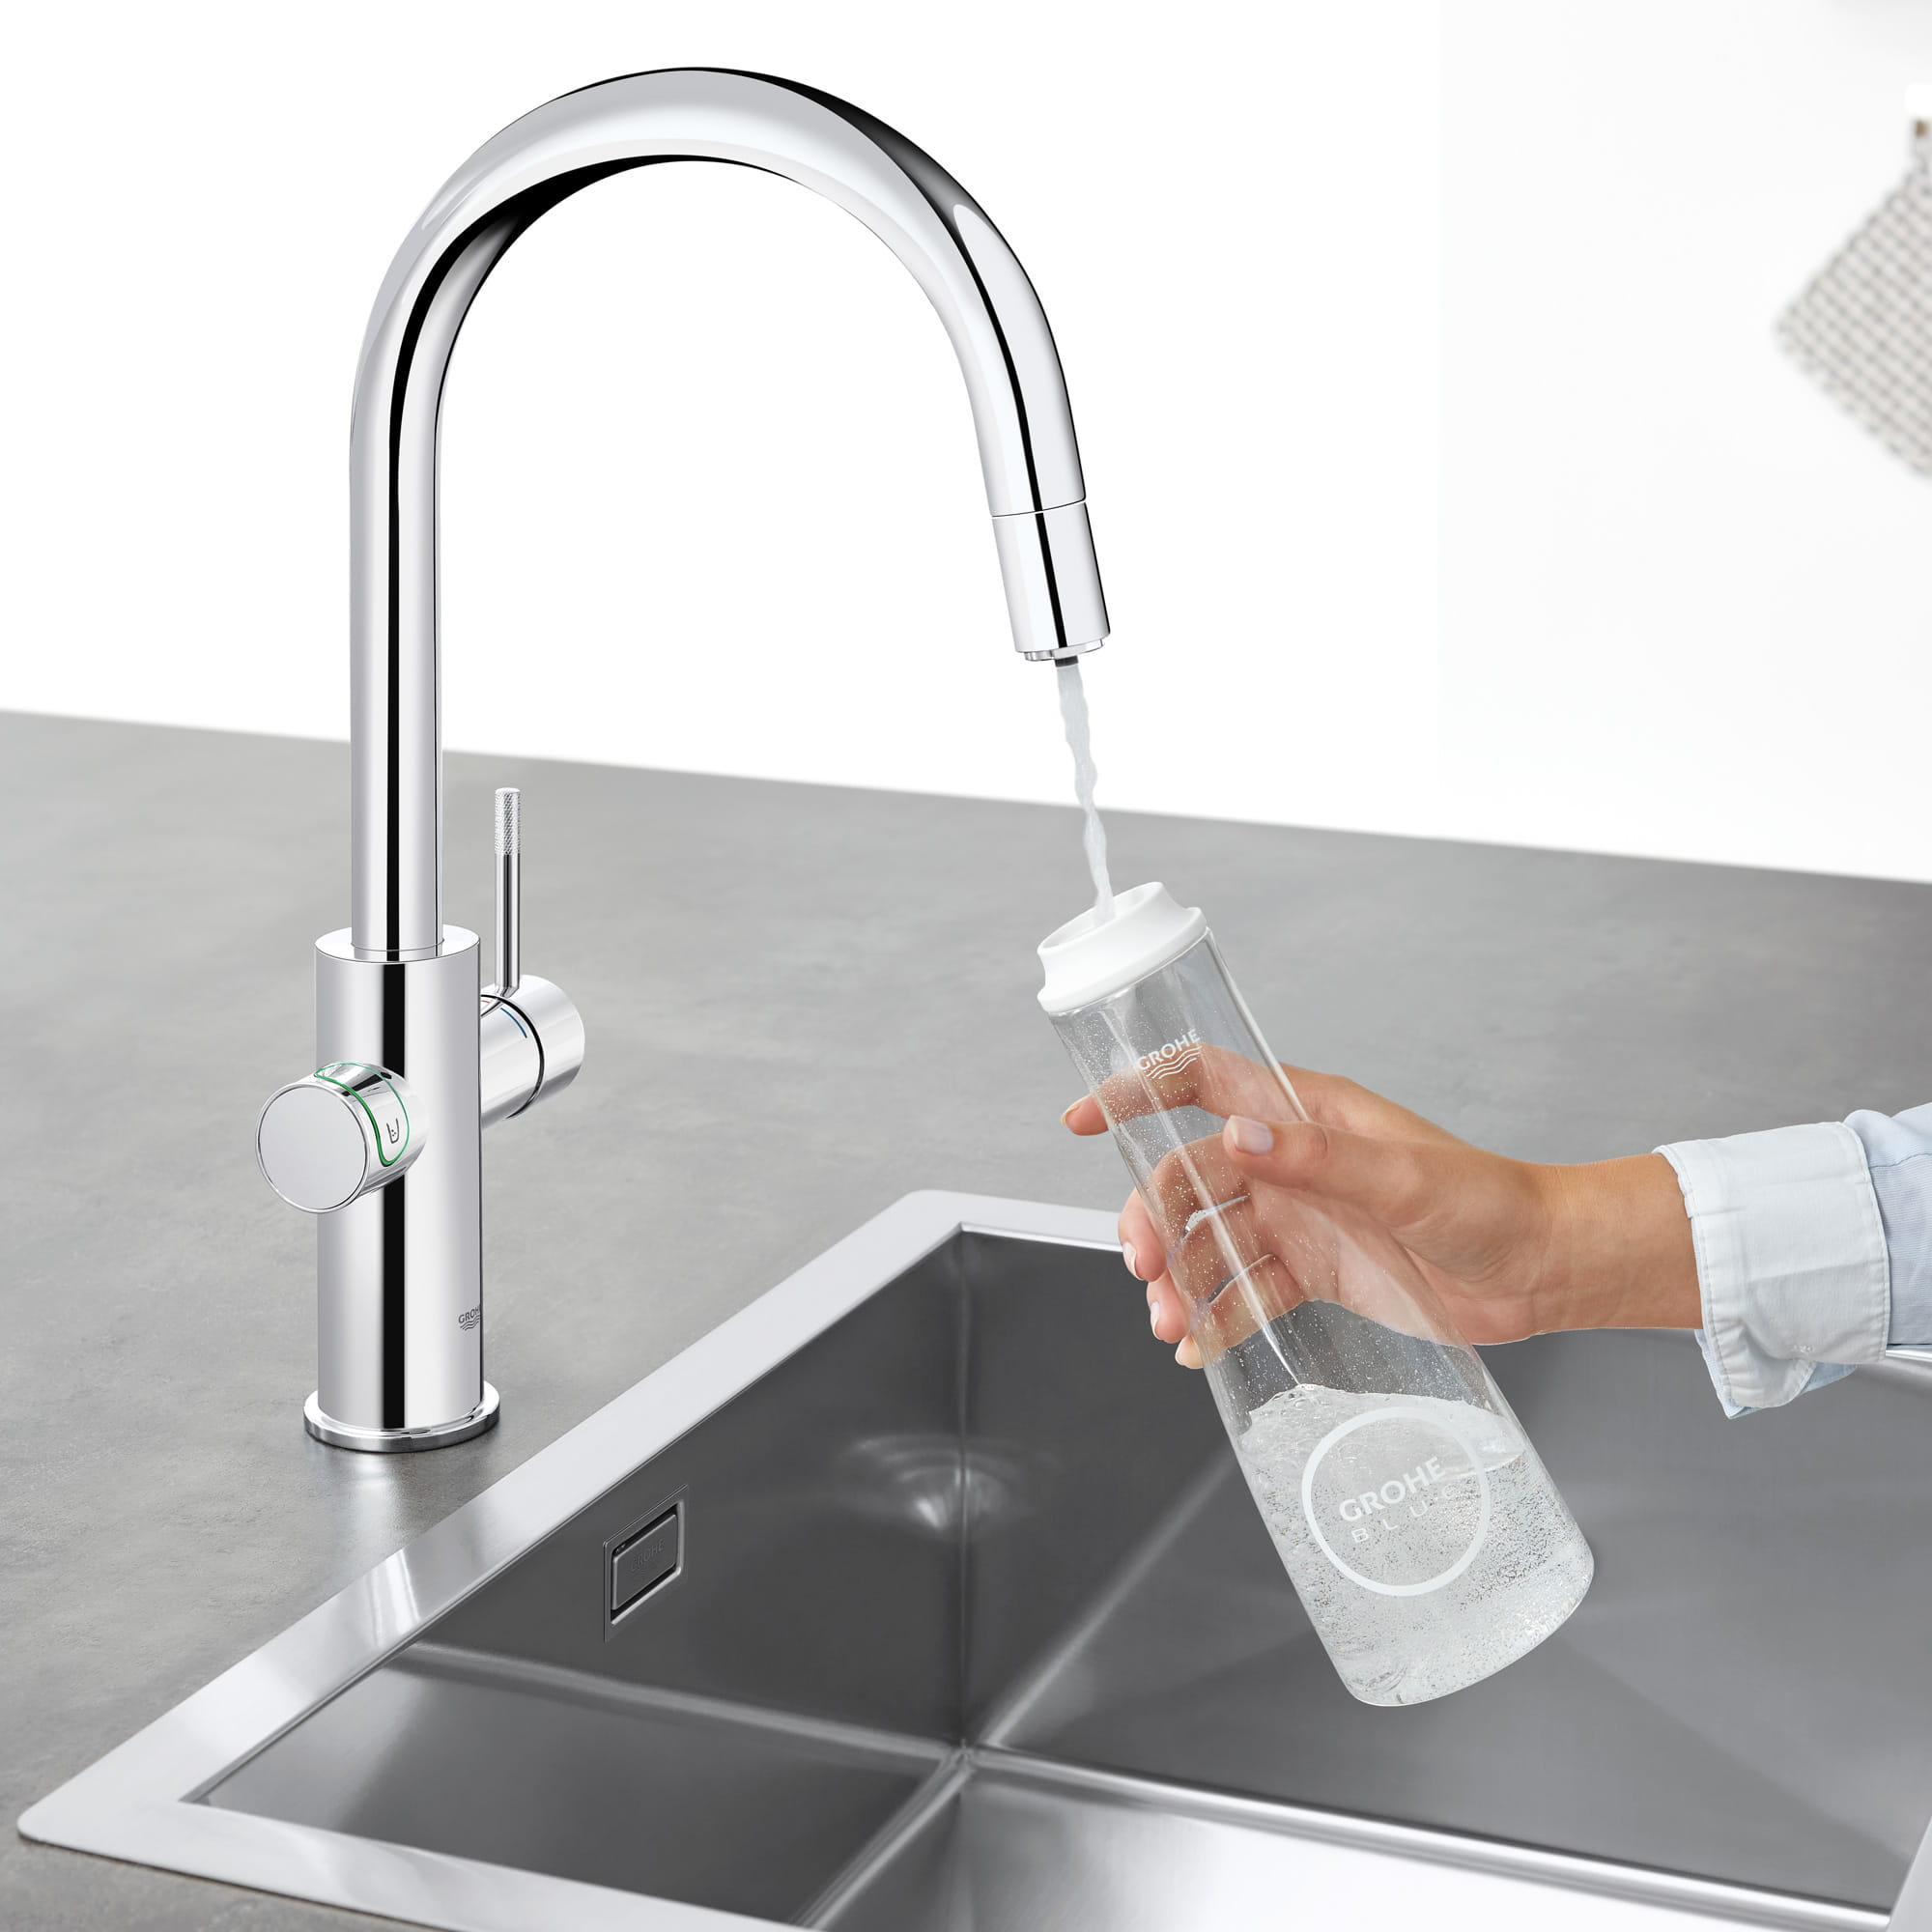 water saving products